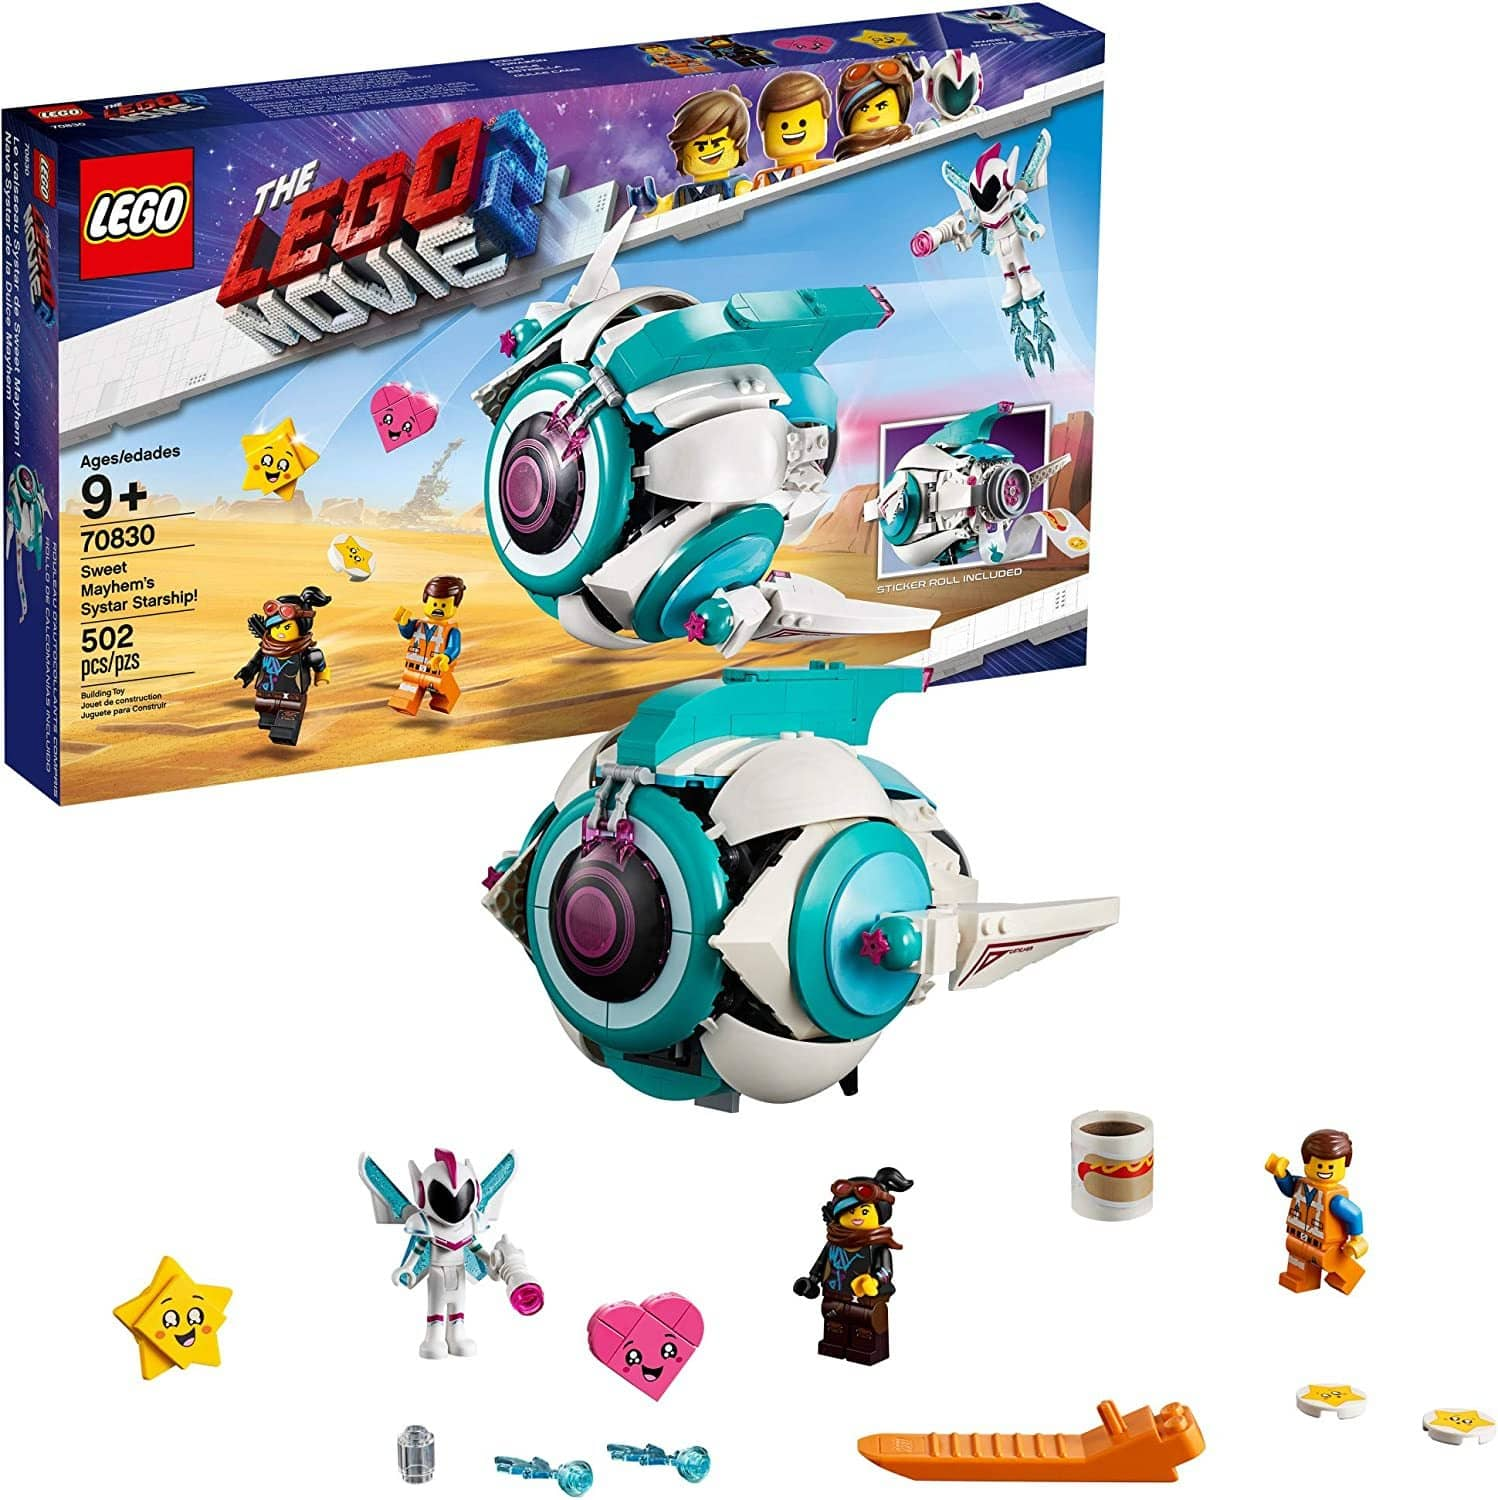 LEGO 70830: LEGO Movie 2: Sweet Mayhem's Systar Starship! (502 Pieces)-Kidding Around NYC